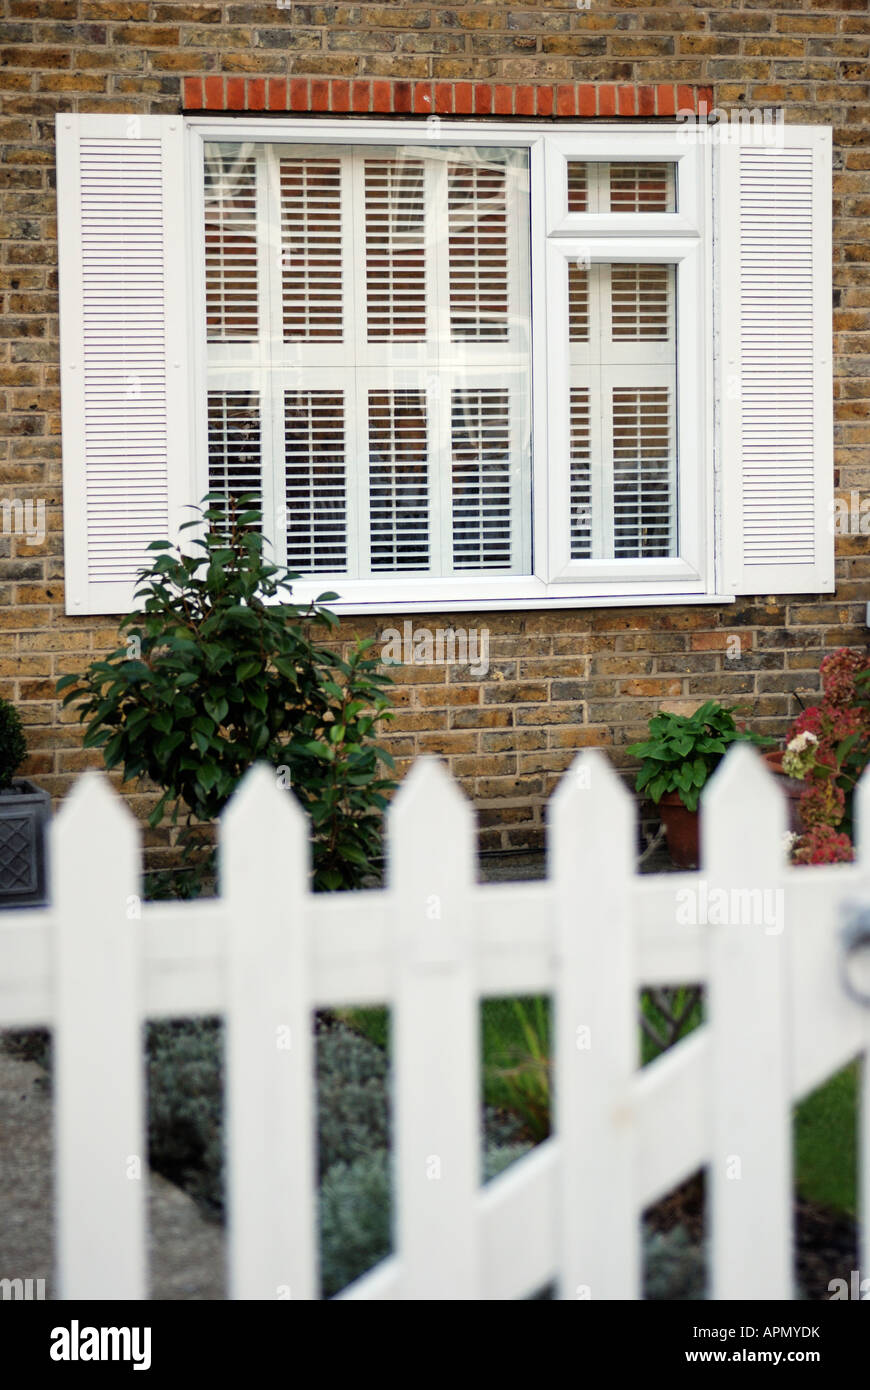 window with interior plantation shutters and exterior shutters with garden and picket fence in foreground - Custom Plantation Shutters